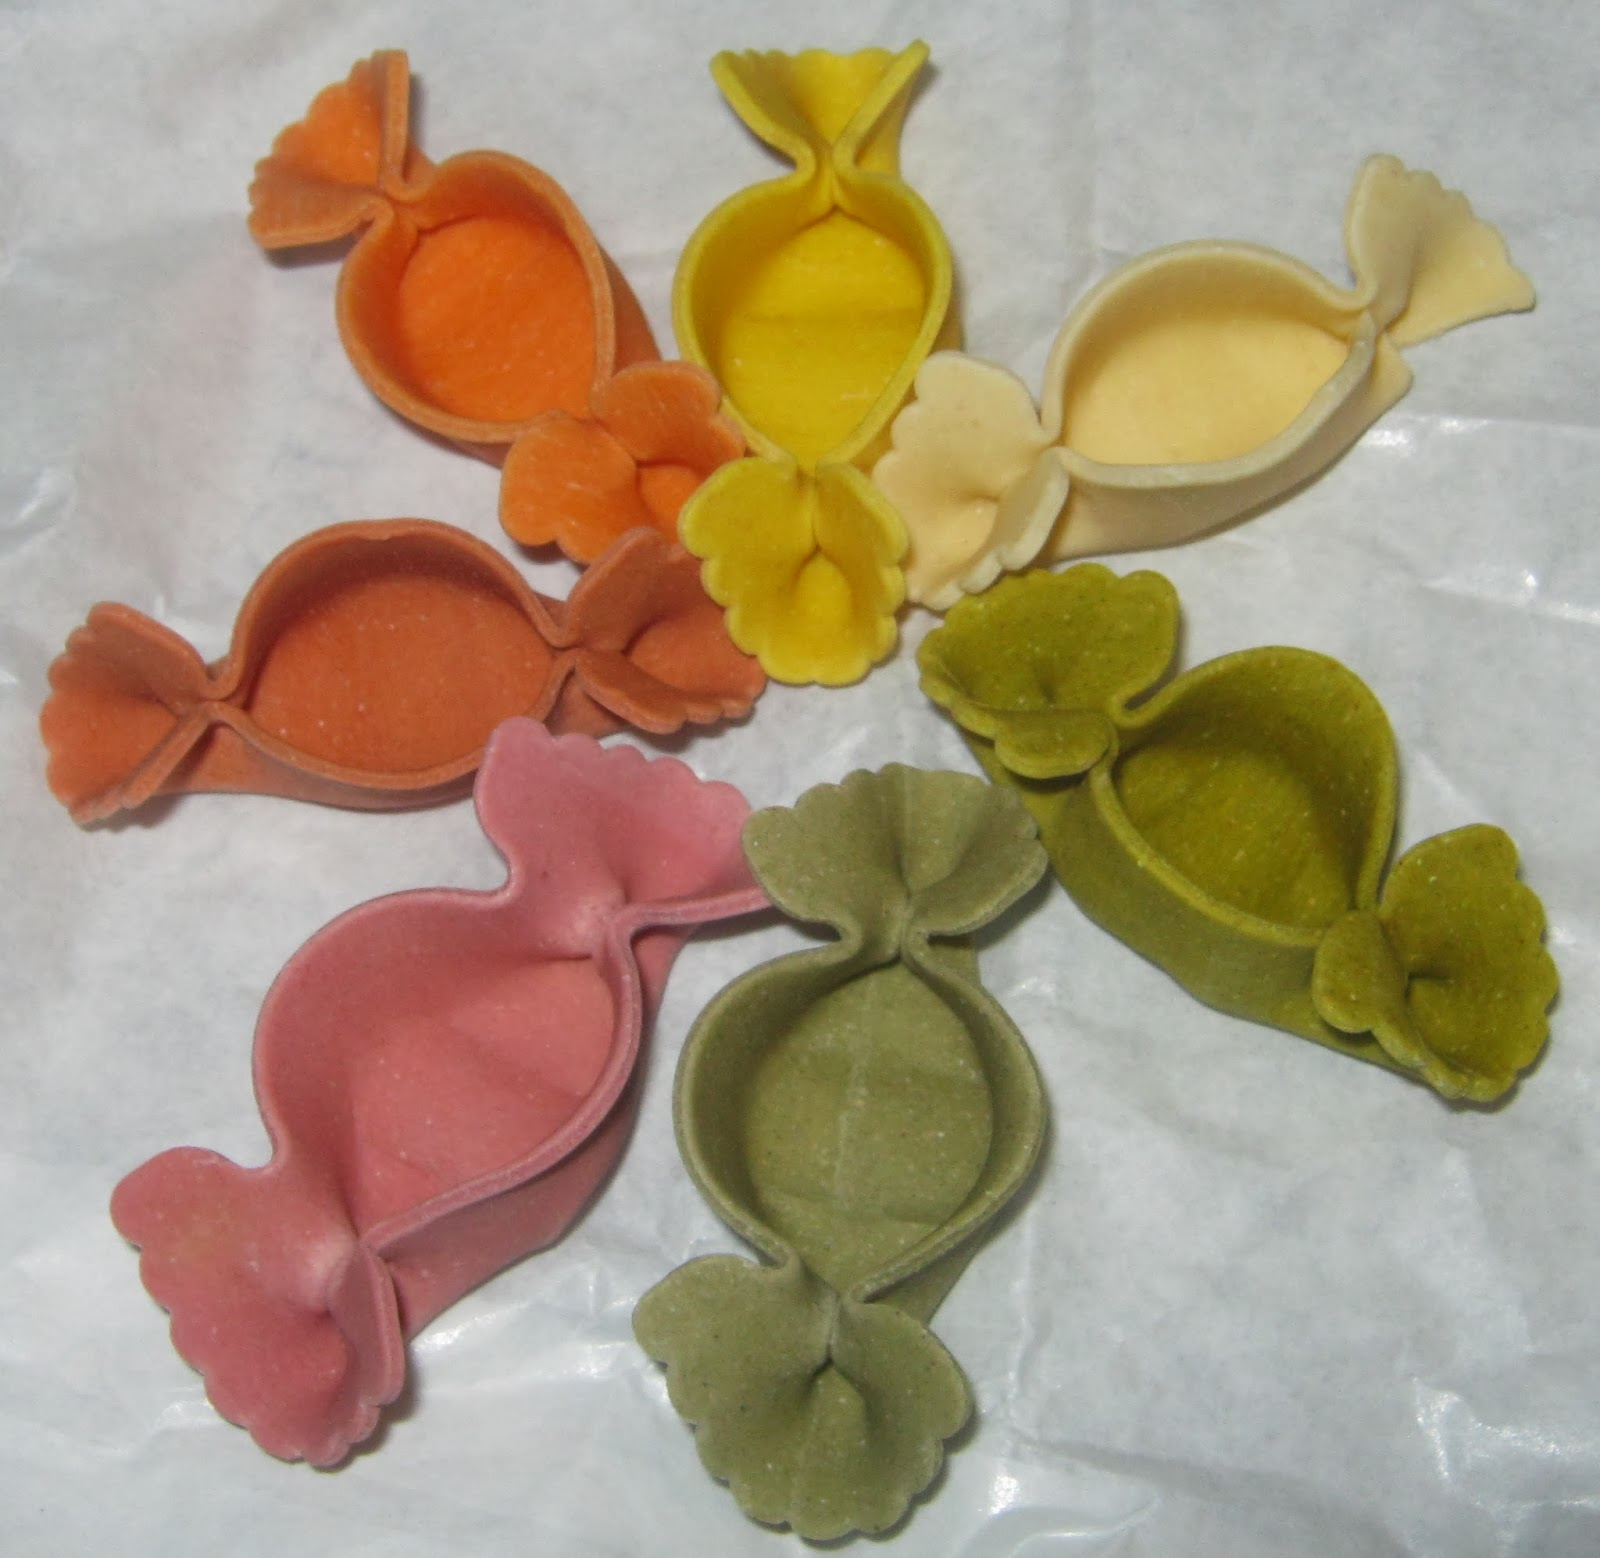 All the different colours of the pasta